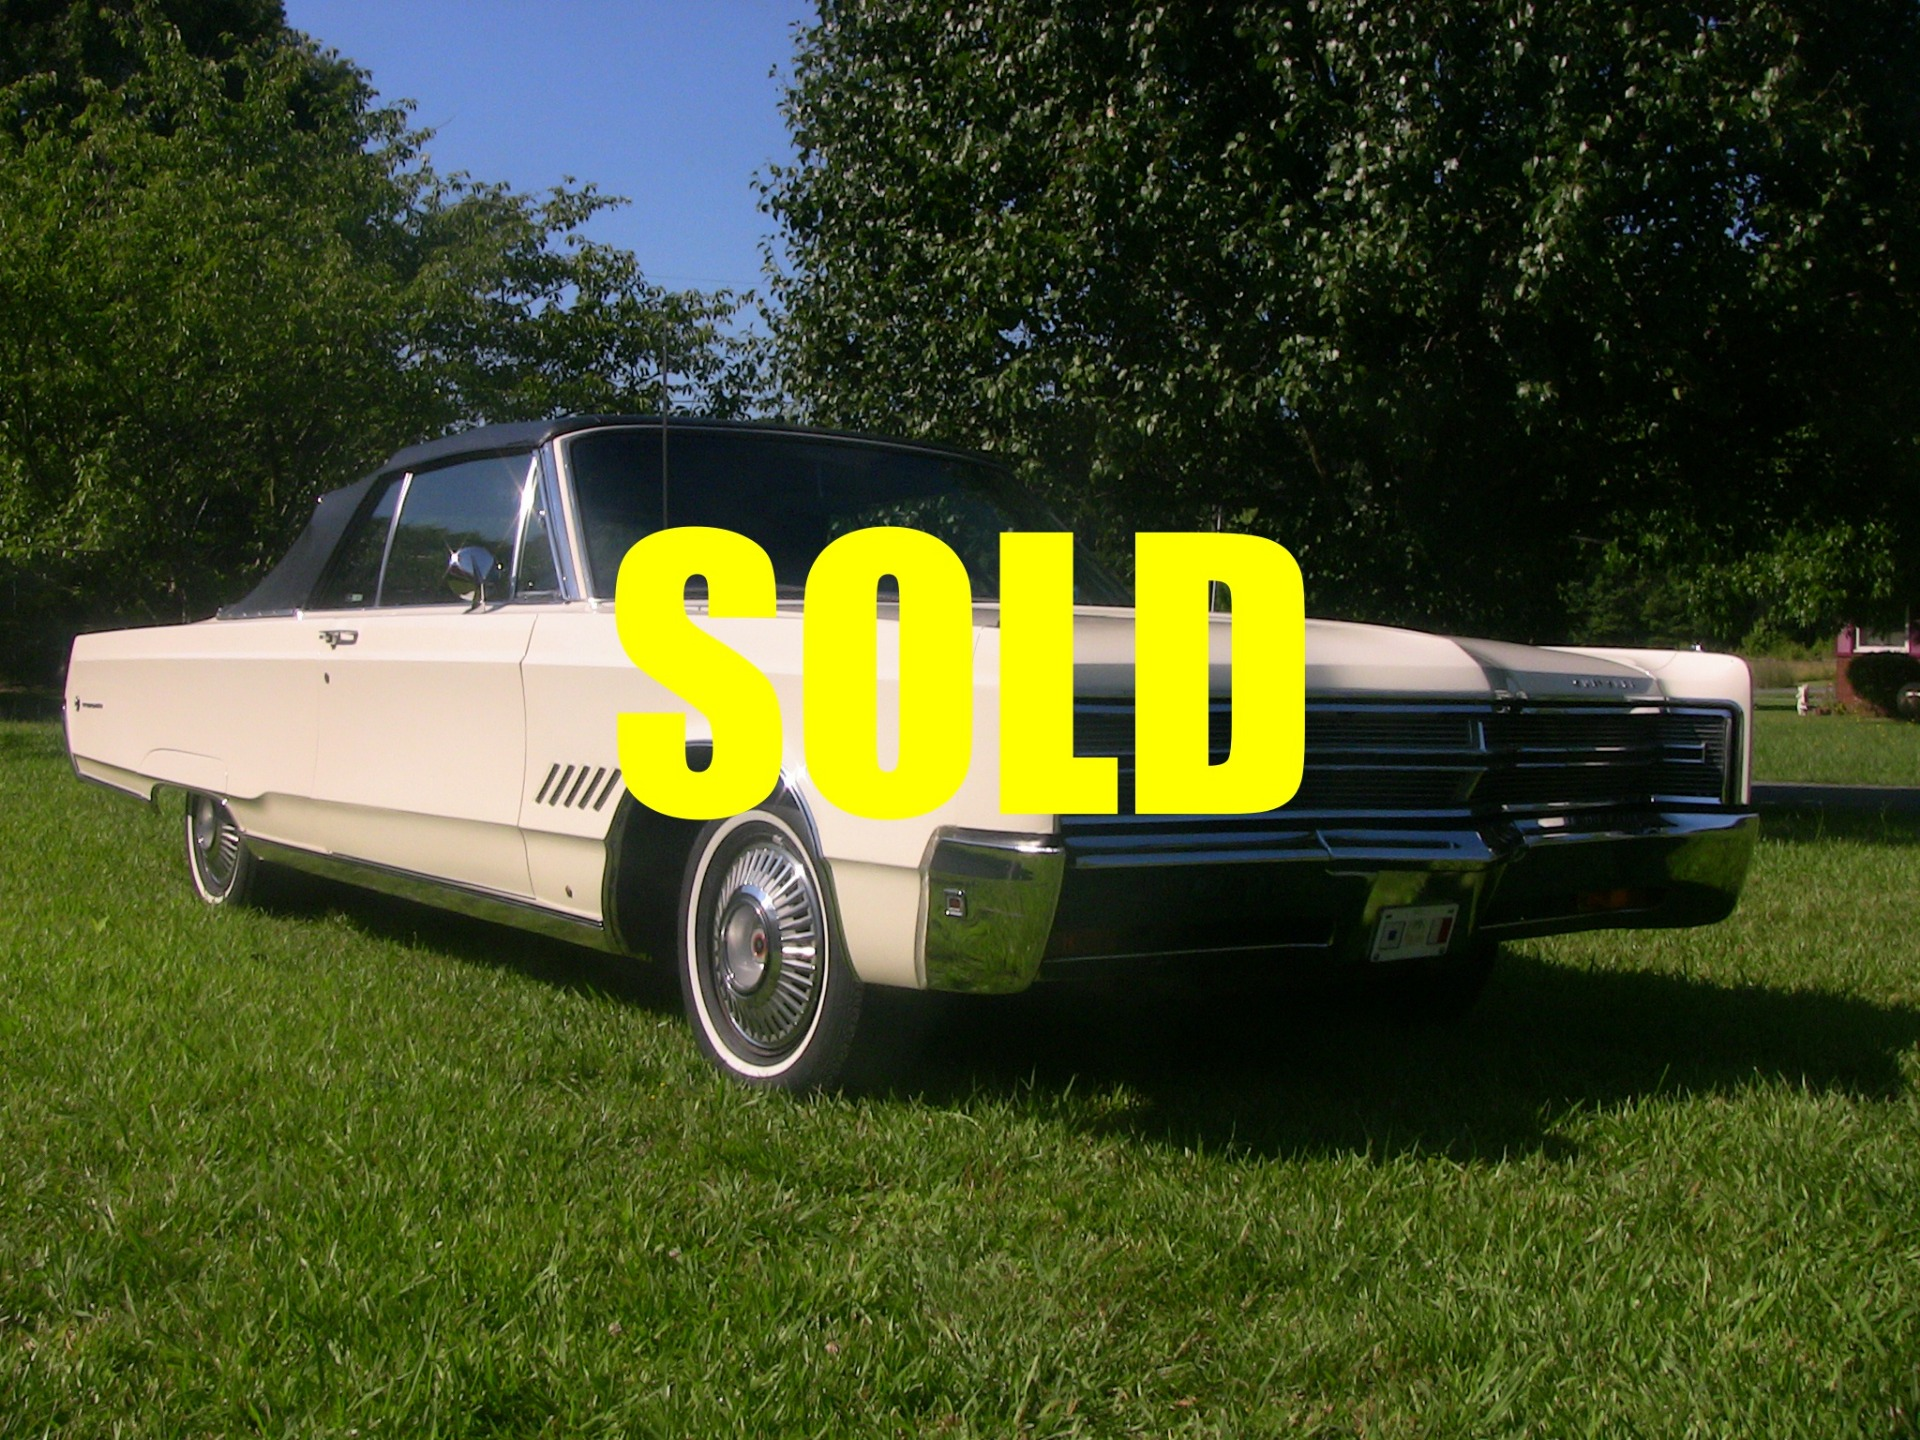 1968 Chrysler 300 Convertible Stock A101 For Sale Near